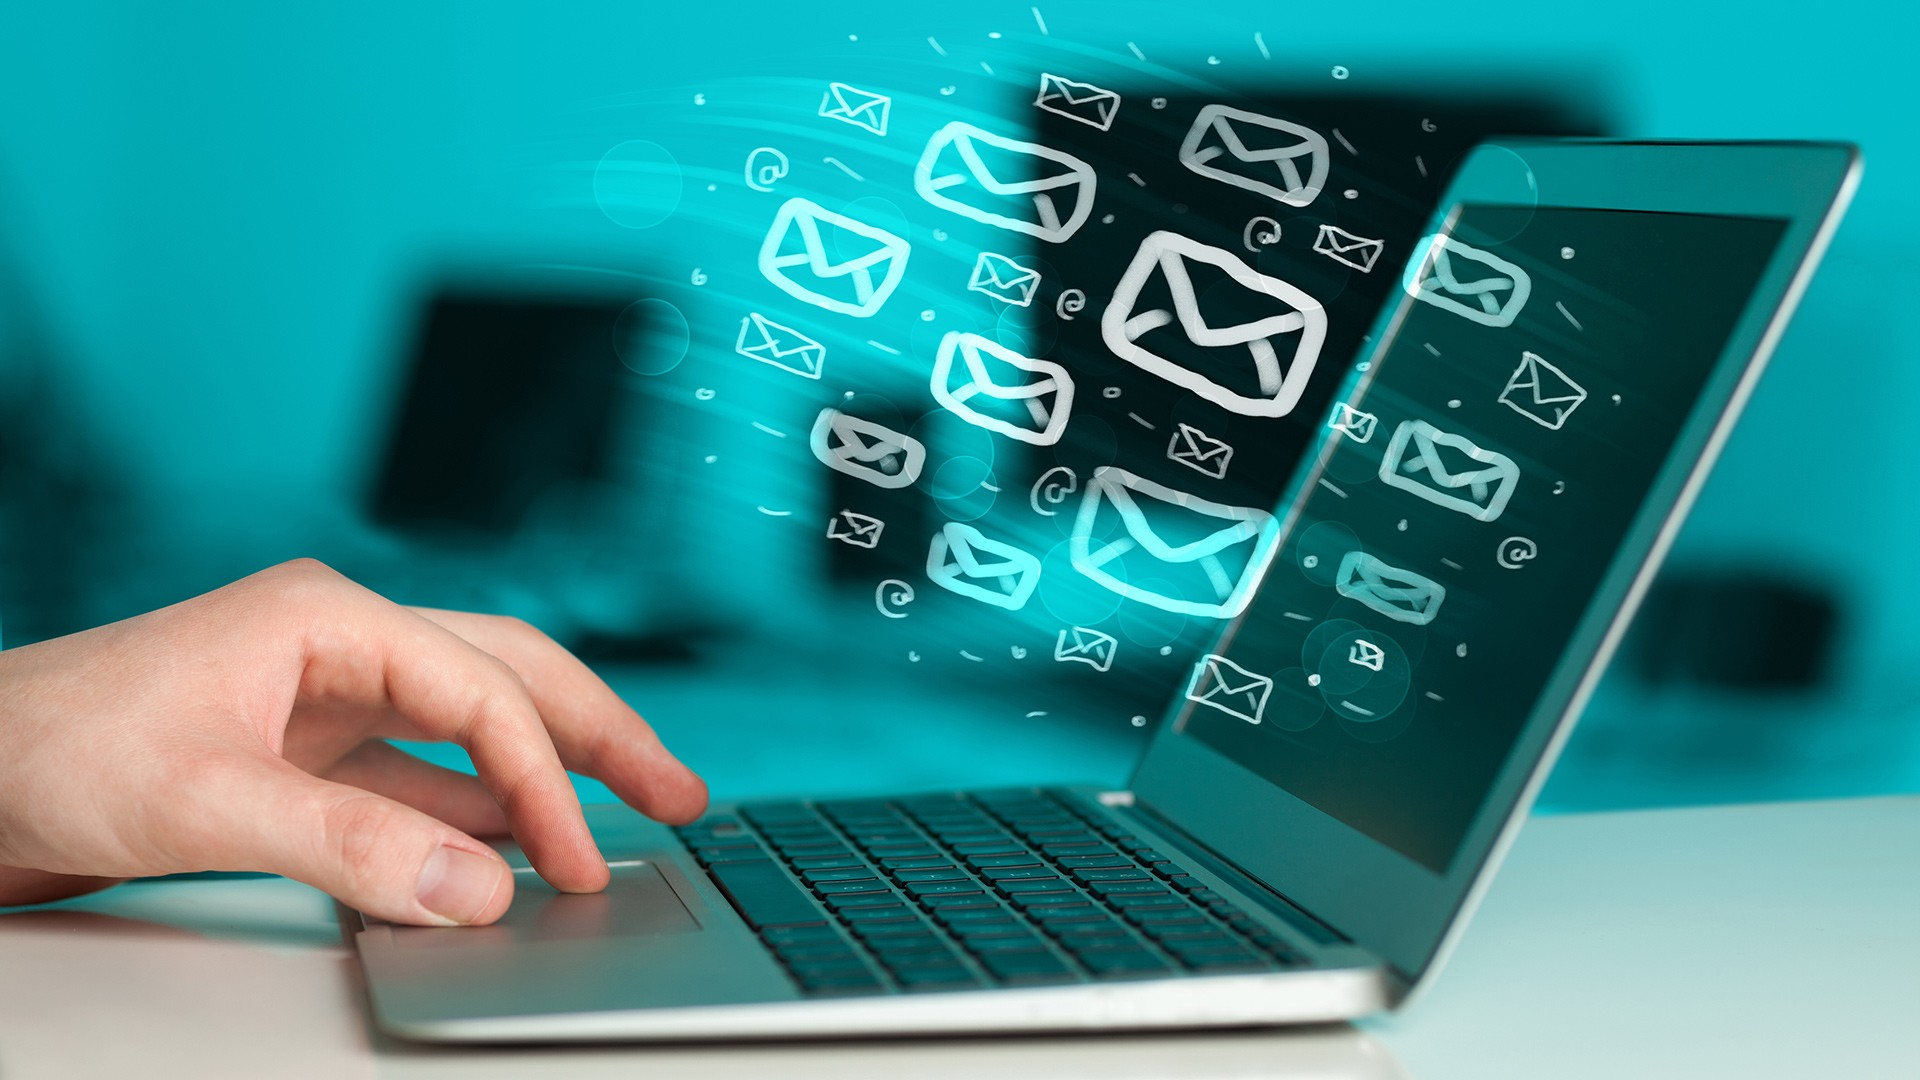 Emails can breach the security of our data